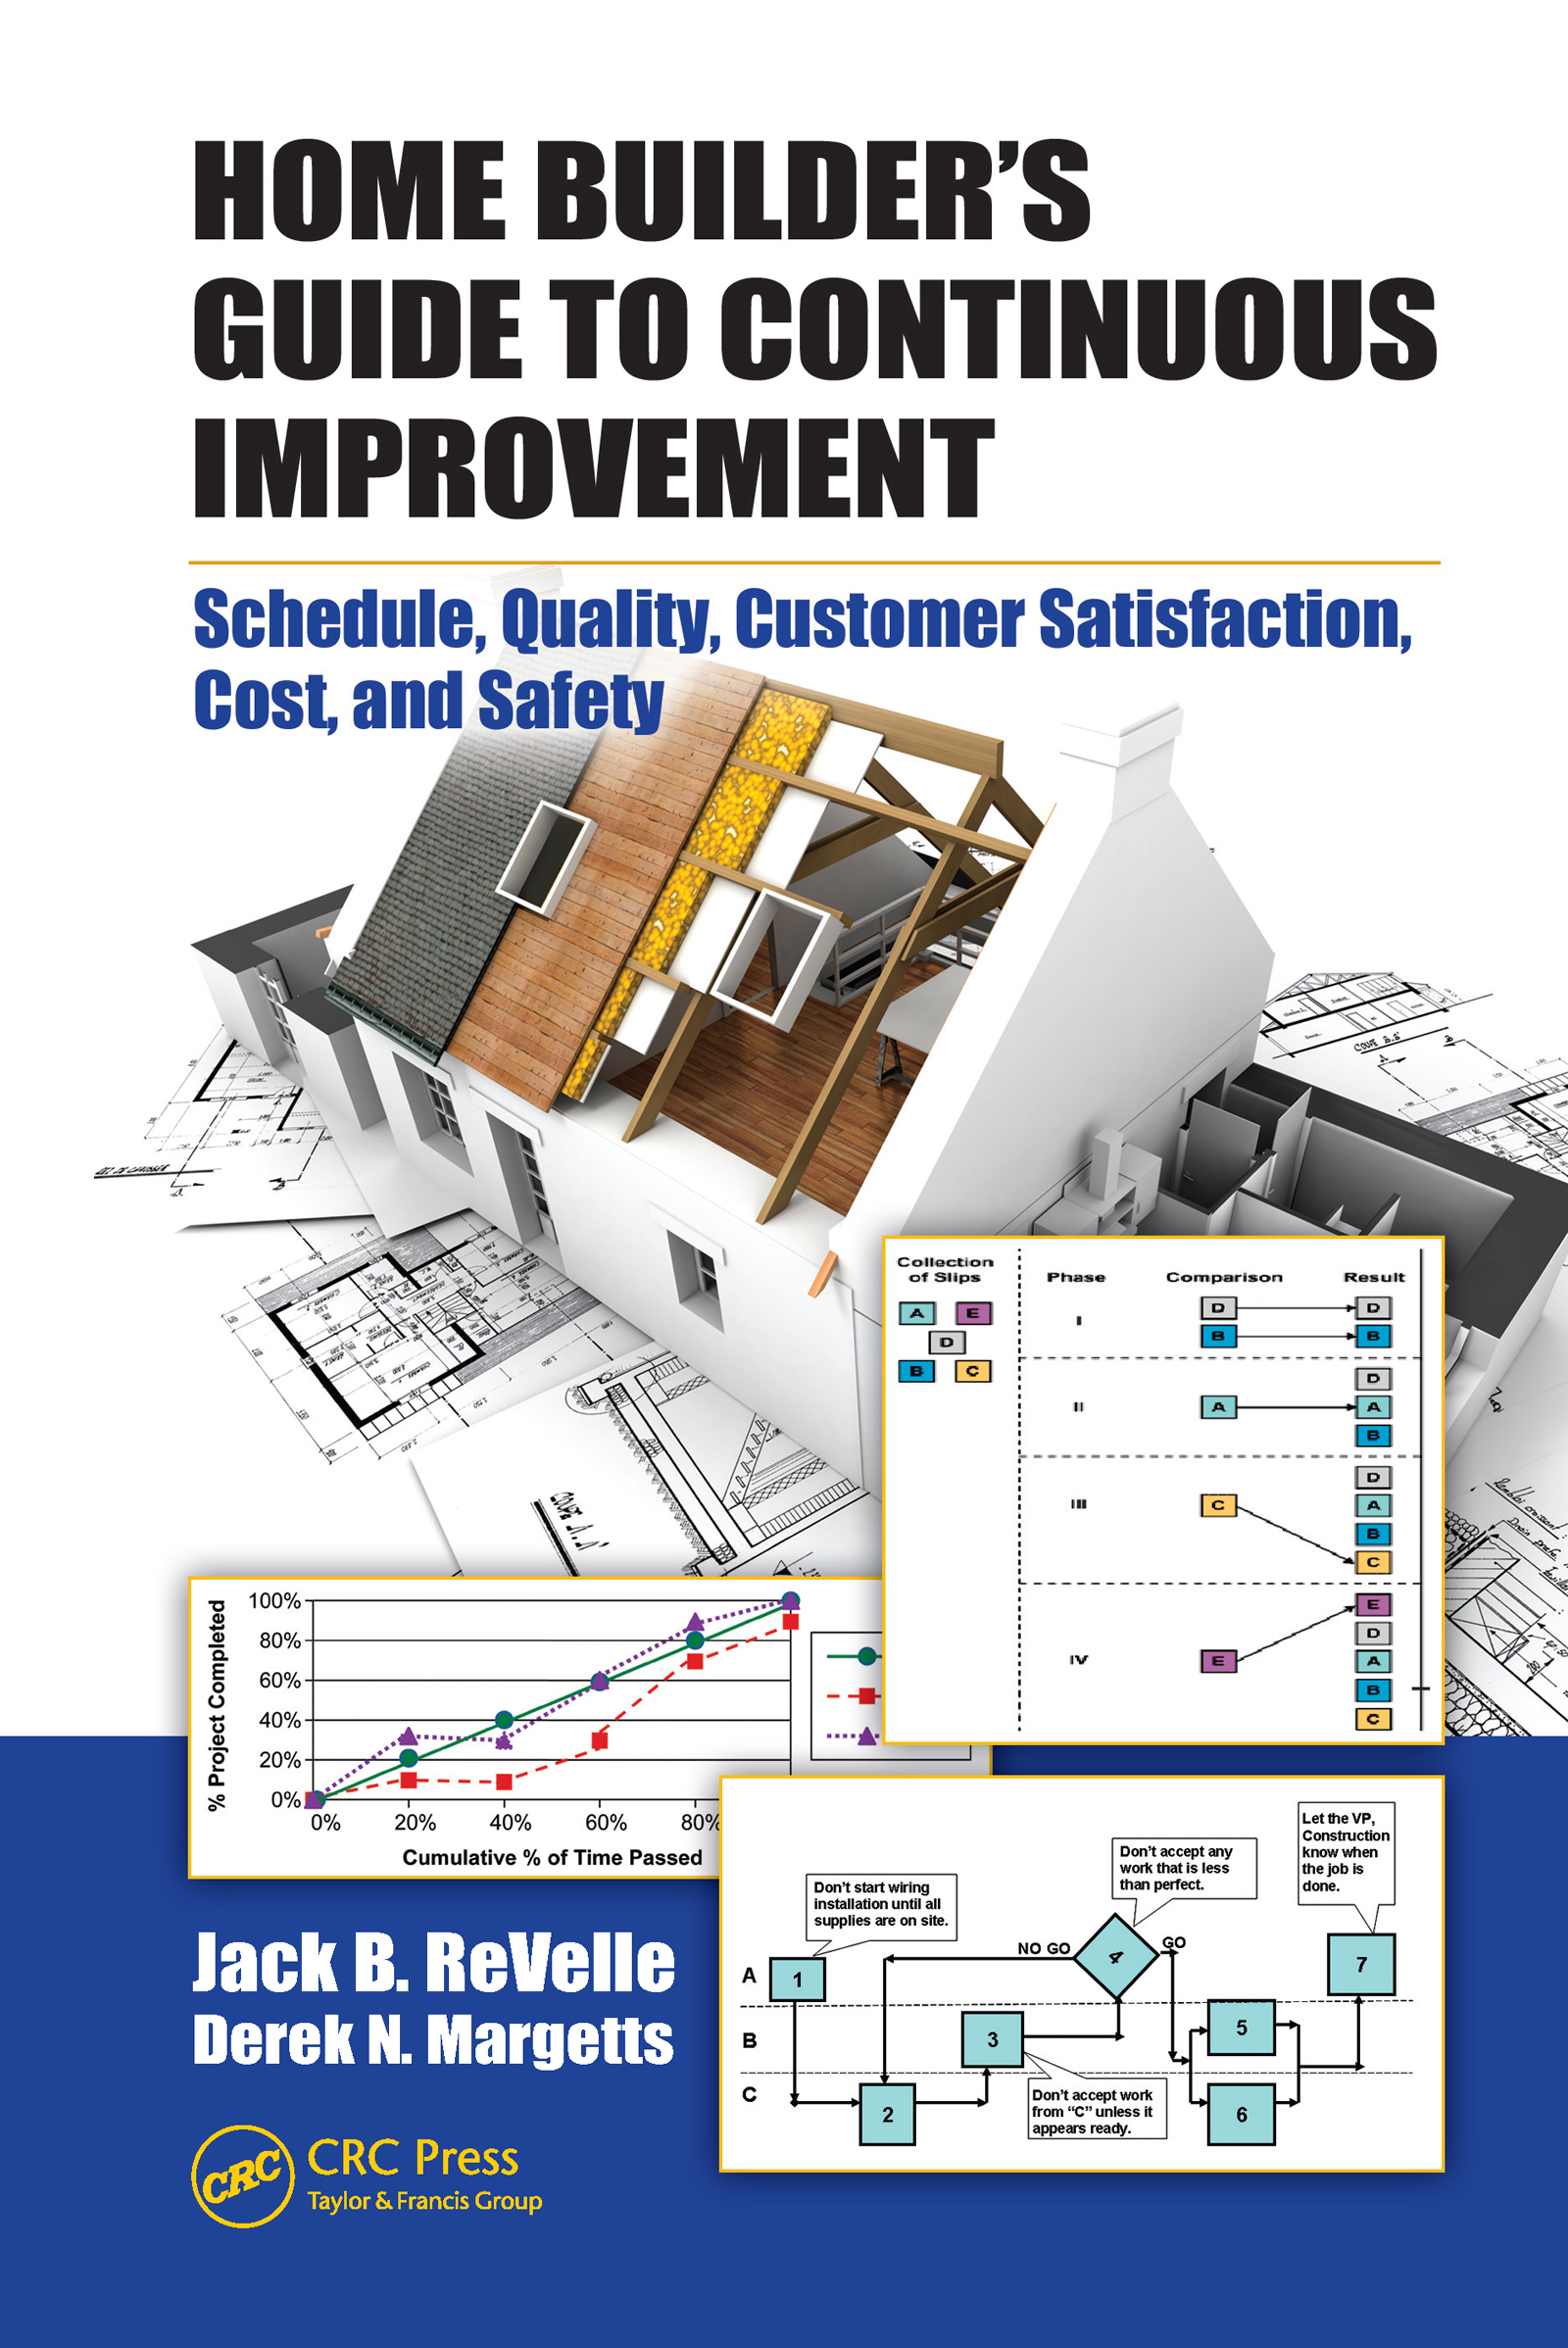 Home Builder's Guide to Continuous Improvement: Schedule, Quality, Customer Satisfaction, Cost, and Safety book cover